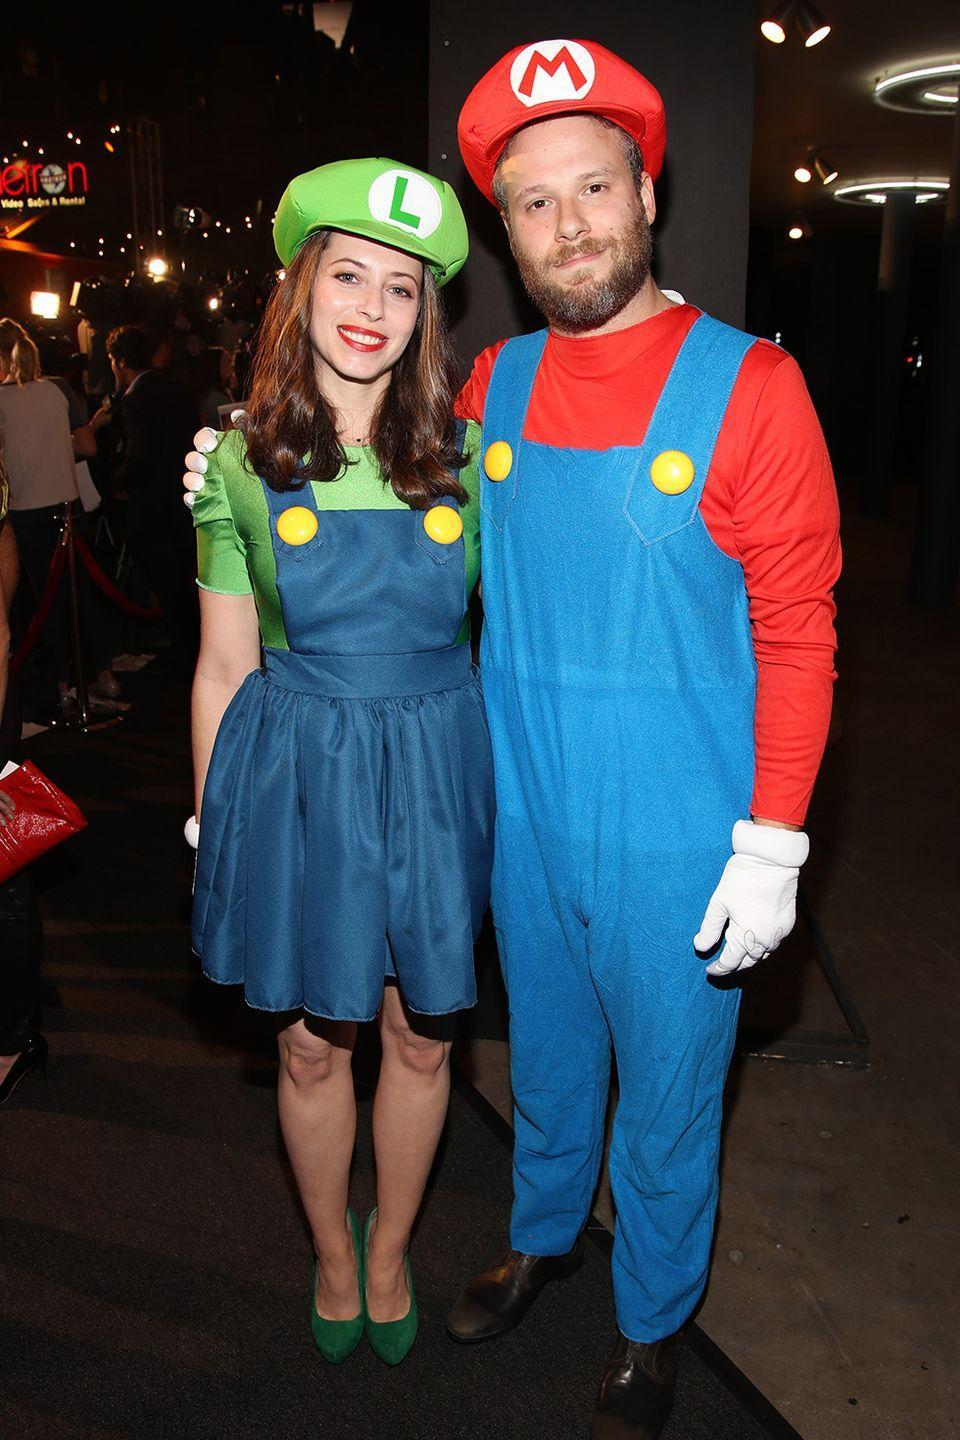 <p>Lauren Miller and Seth Rogen dressed up as the Mario Brothers in 2016 in Los Angeles, California. A classic couples costume.</p>